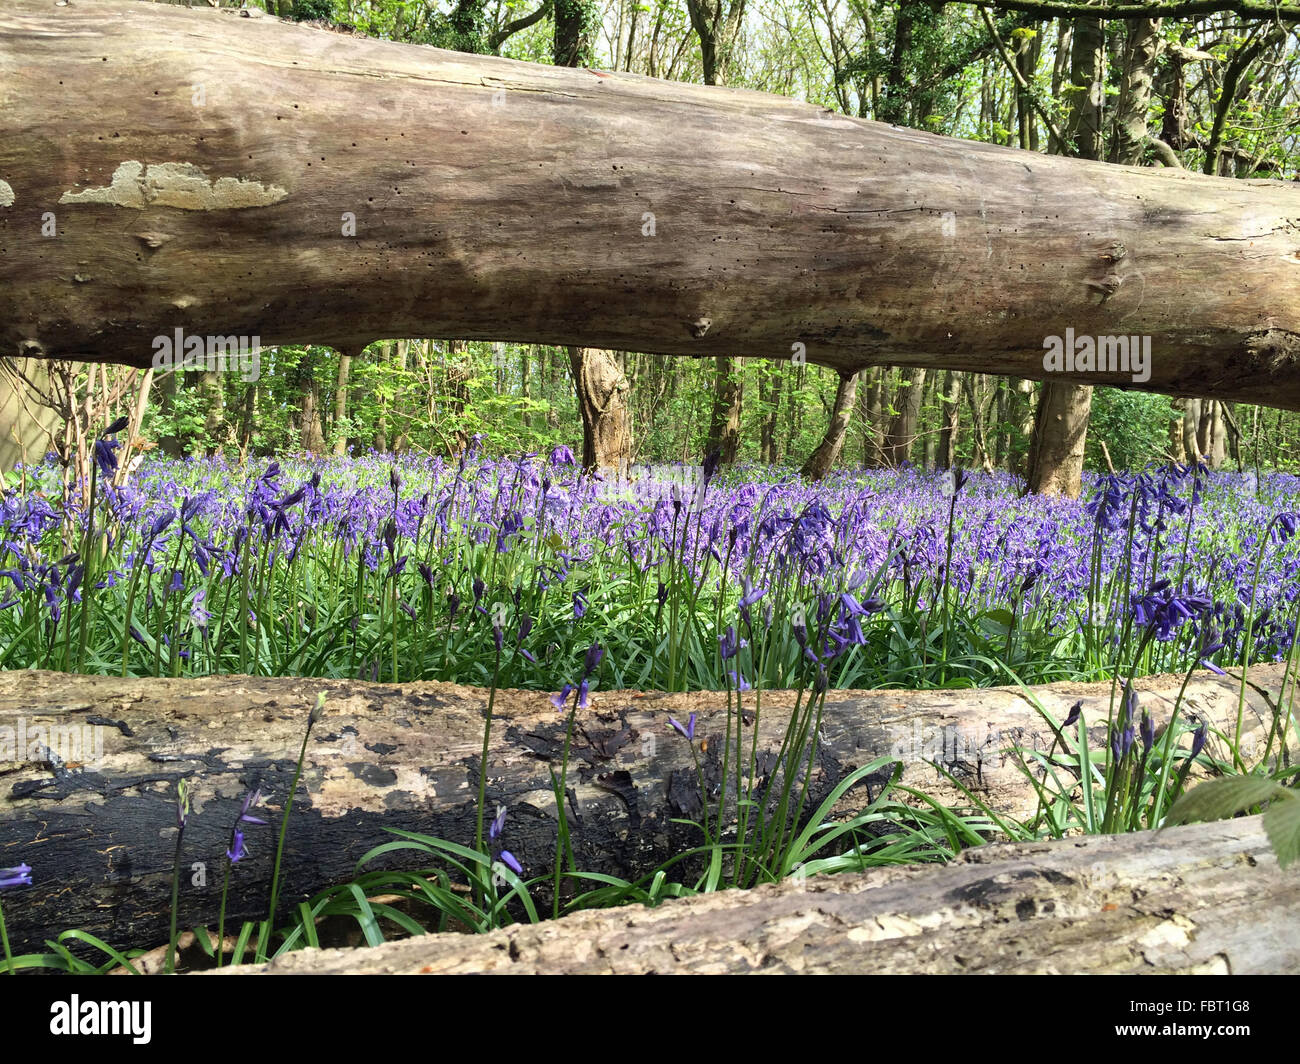 English bluebells in April at New Park Wood in Staffordshire, UK - Stock Image